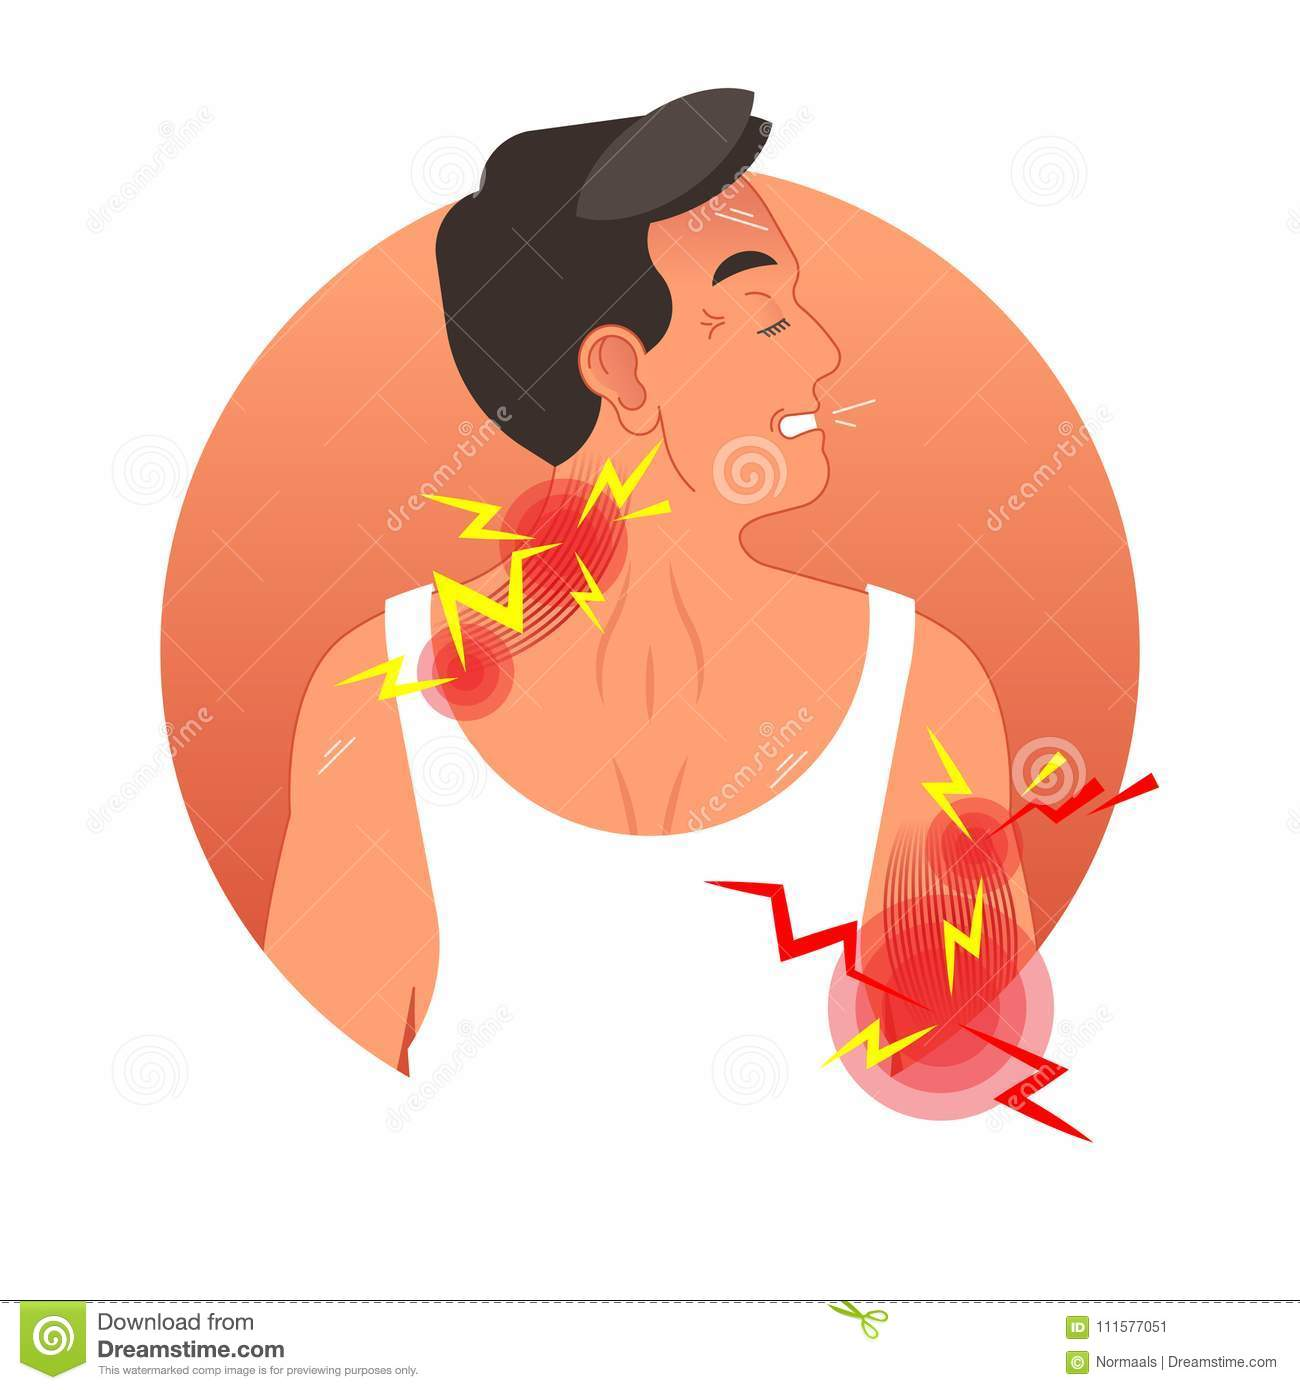 Muscle pain concept vector illustration with human torso. Work safety and sports injury.